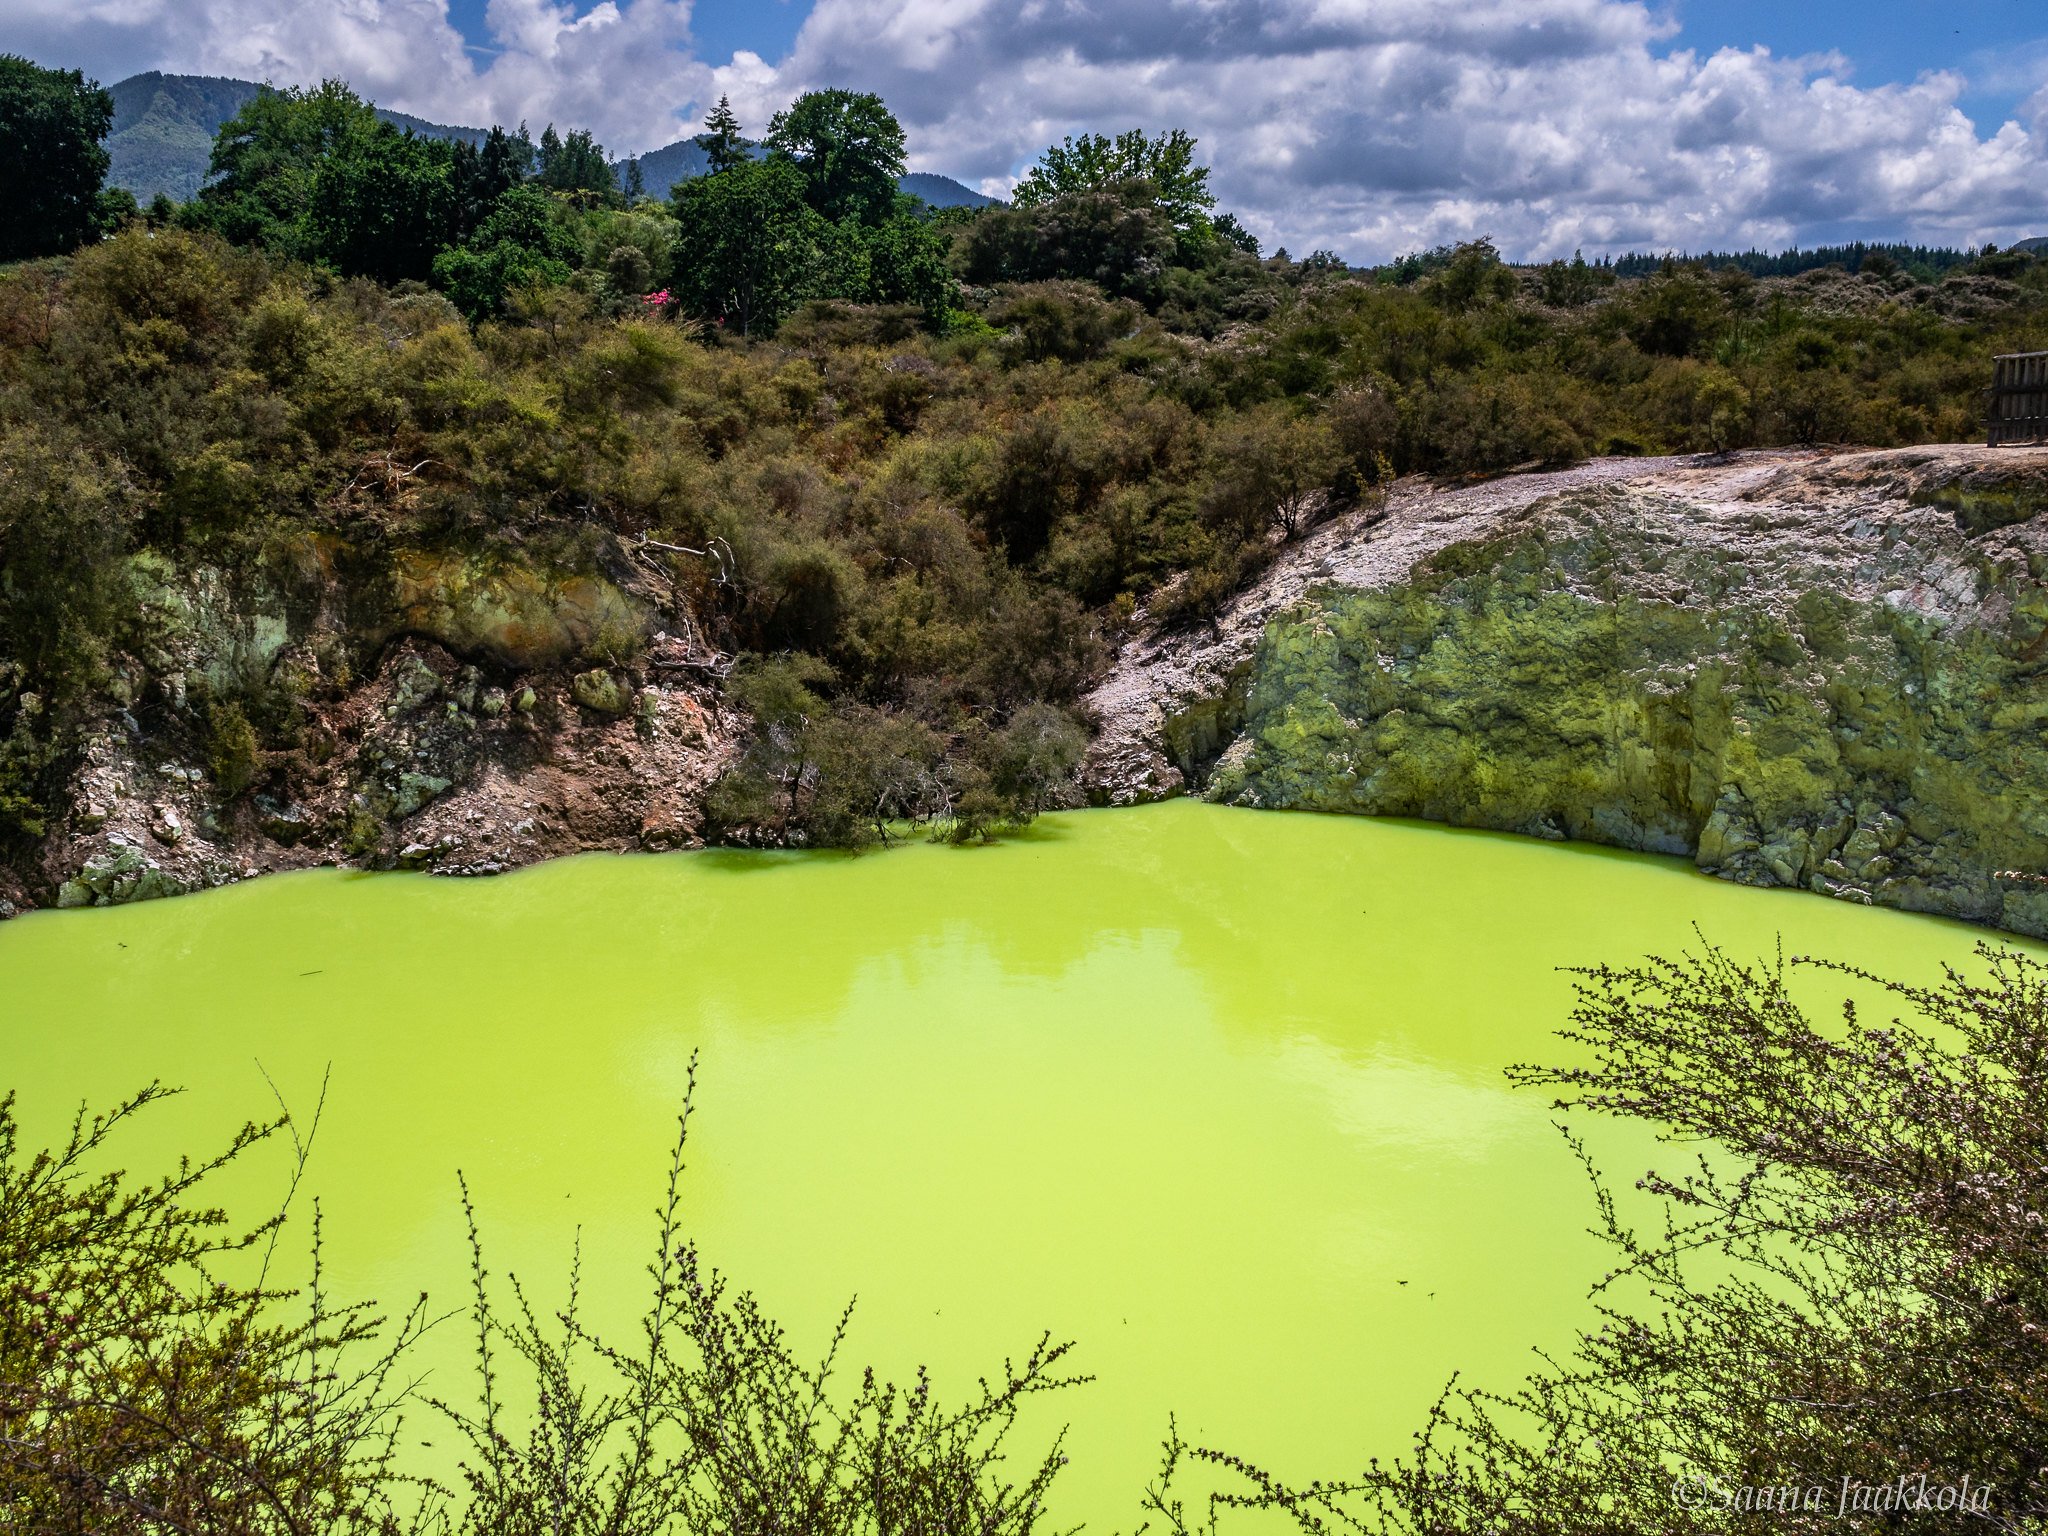 Experiencing Wai-O-Tapu in Rotorua, New Zealand: the poisonous-looking Devil's Bath.